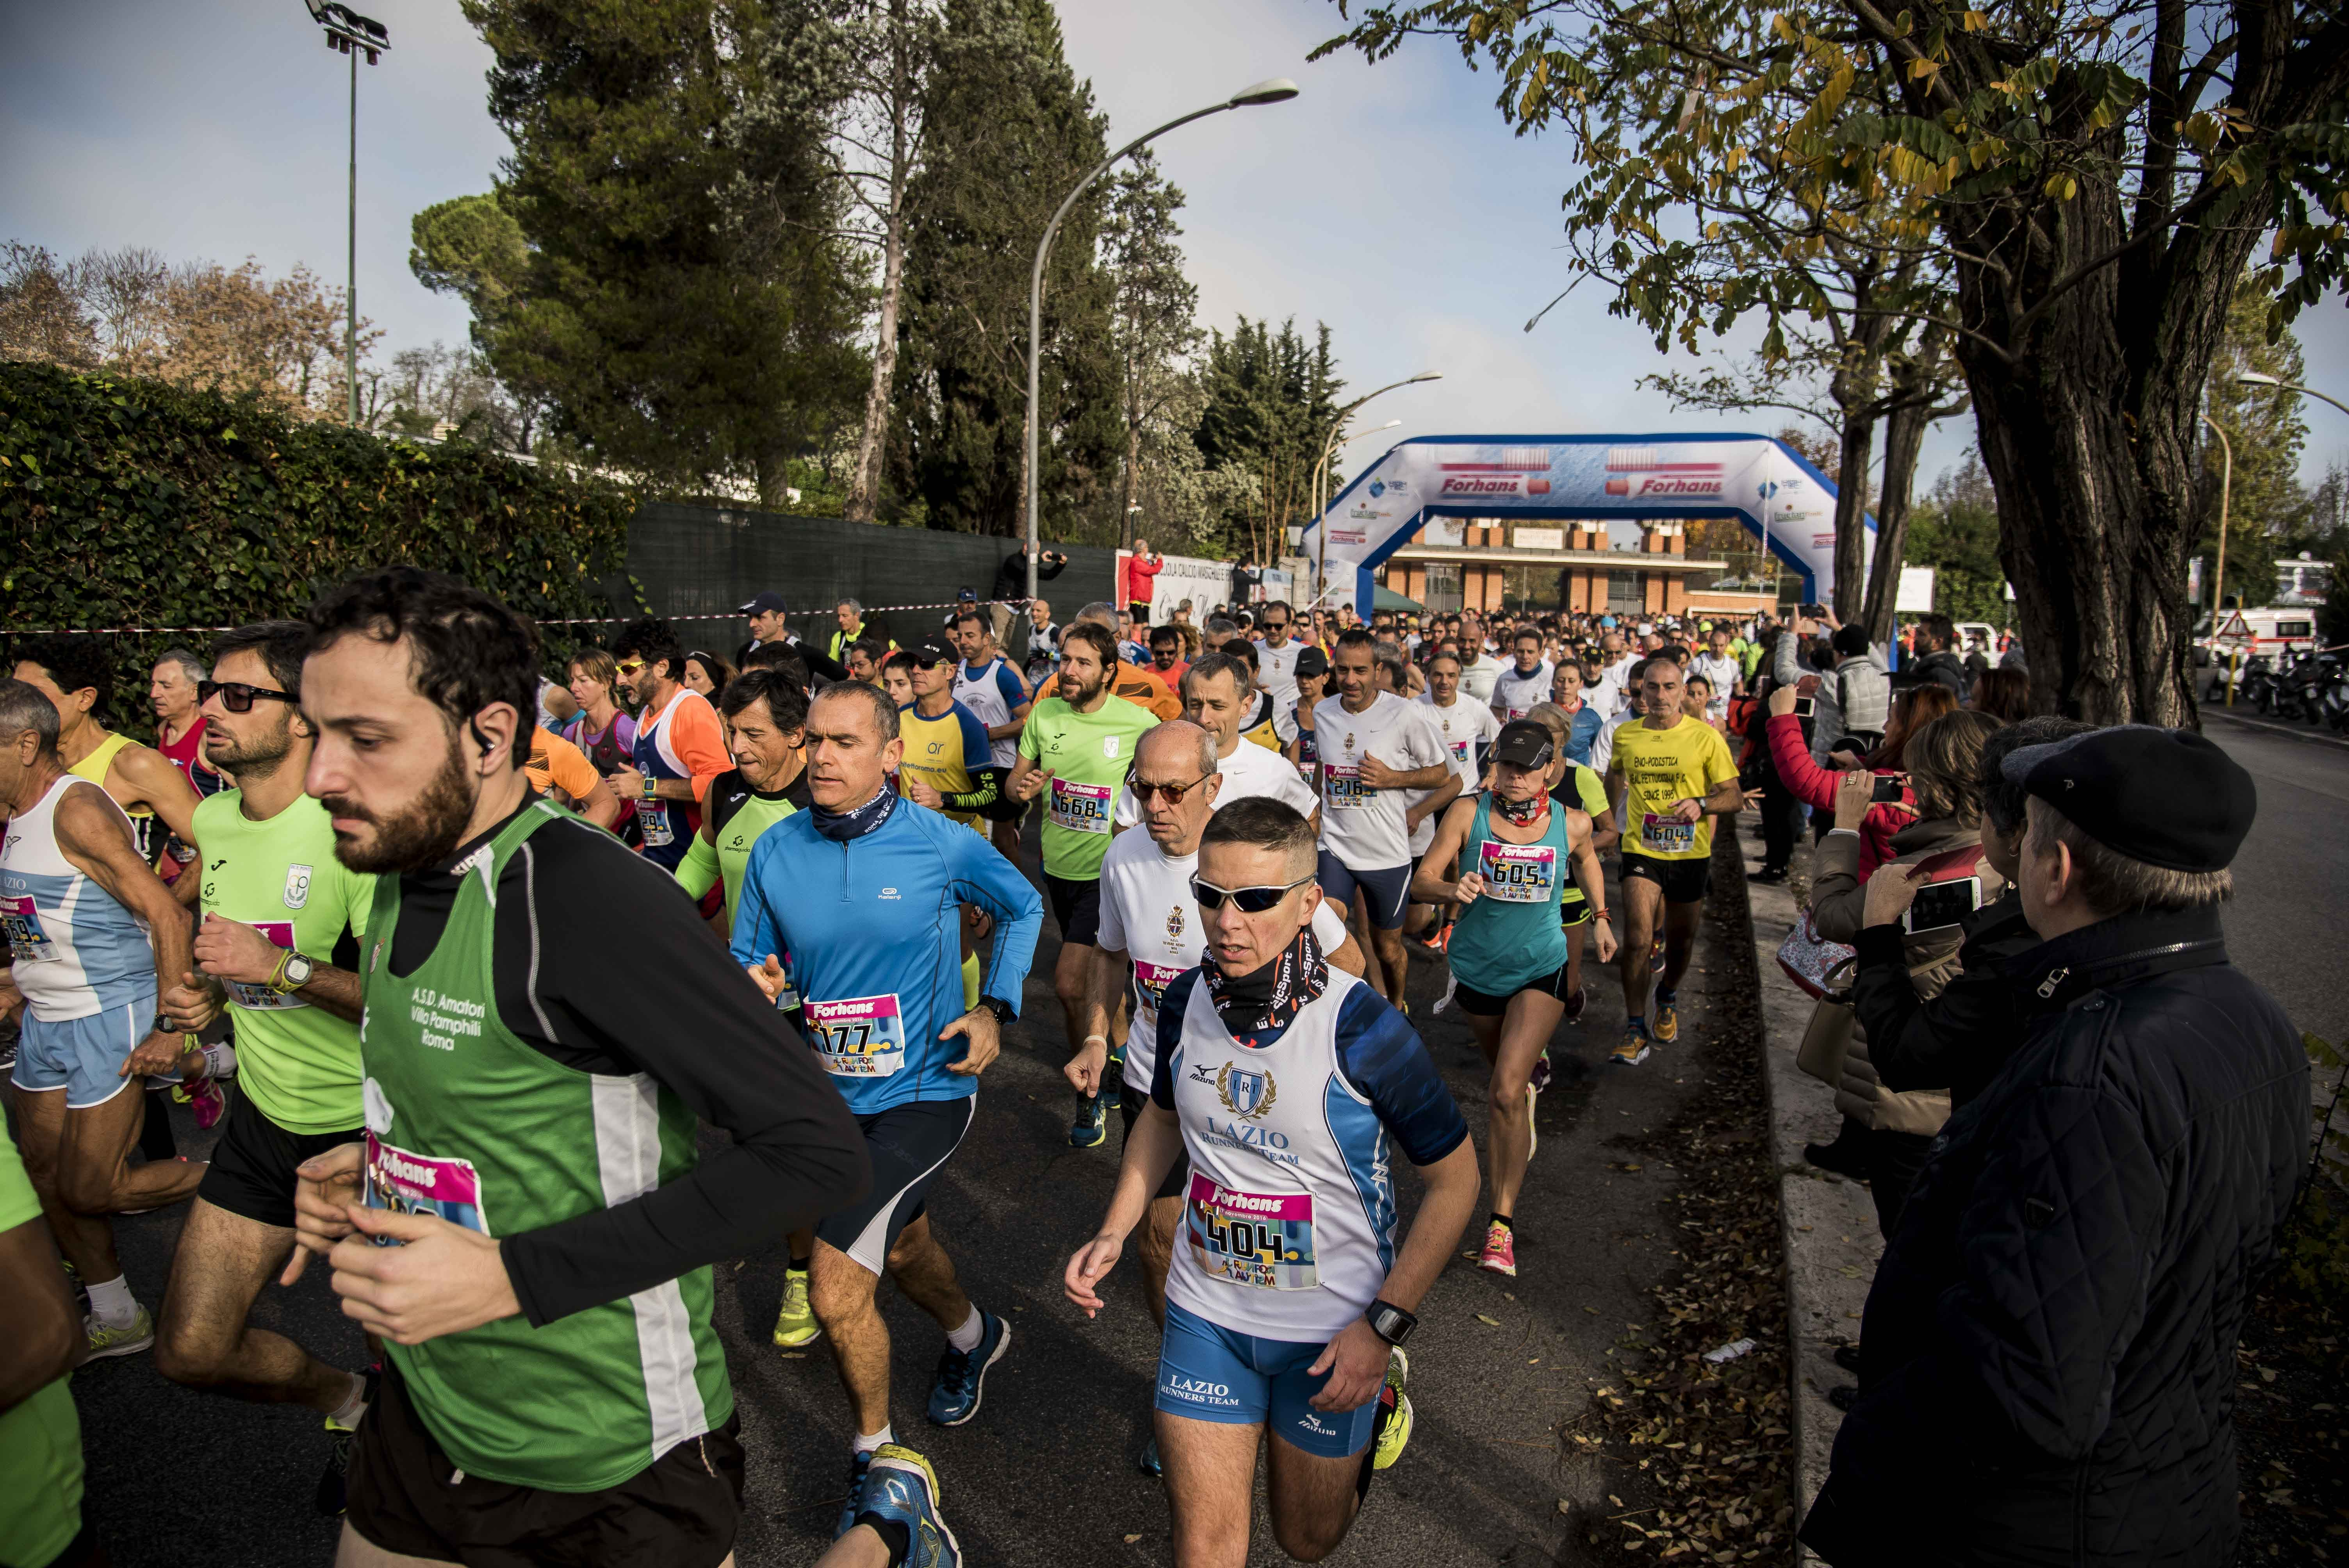 ATLETICA Domenica la Run for Autism